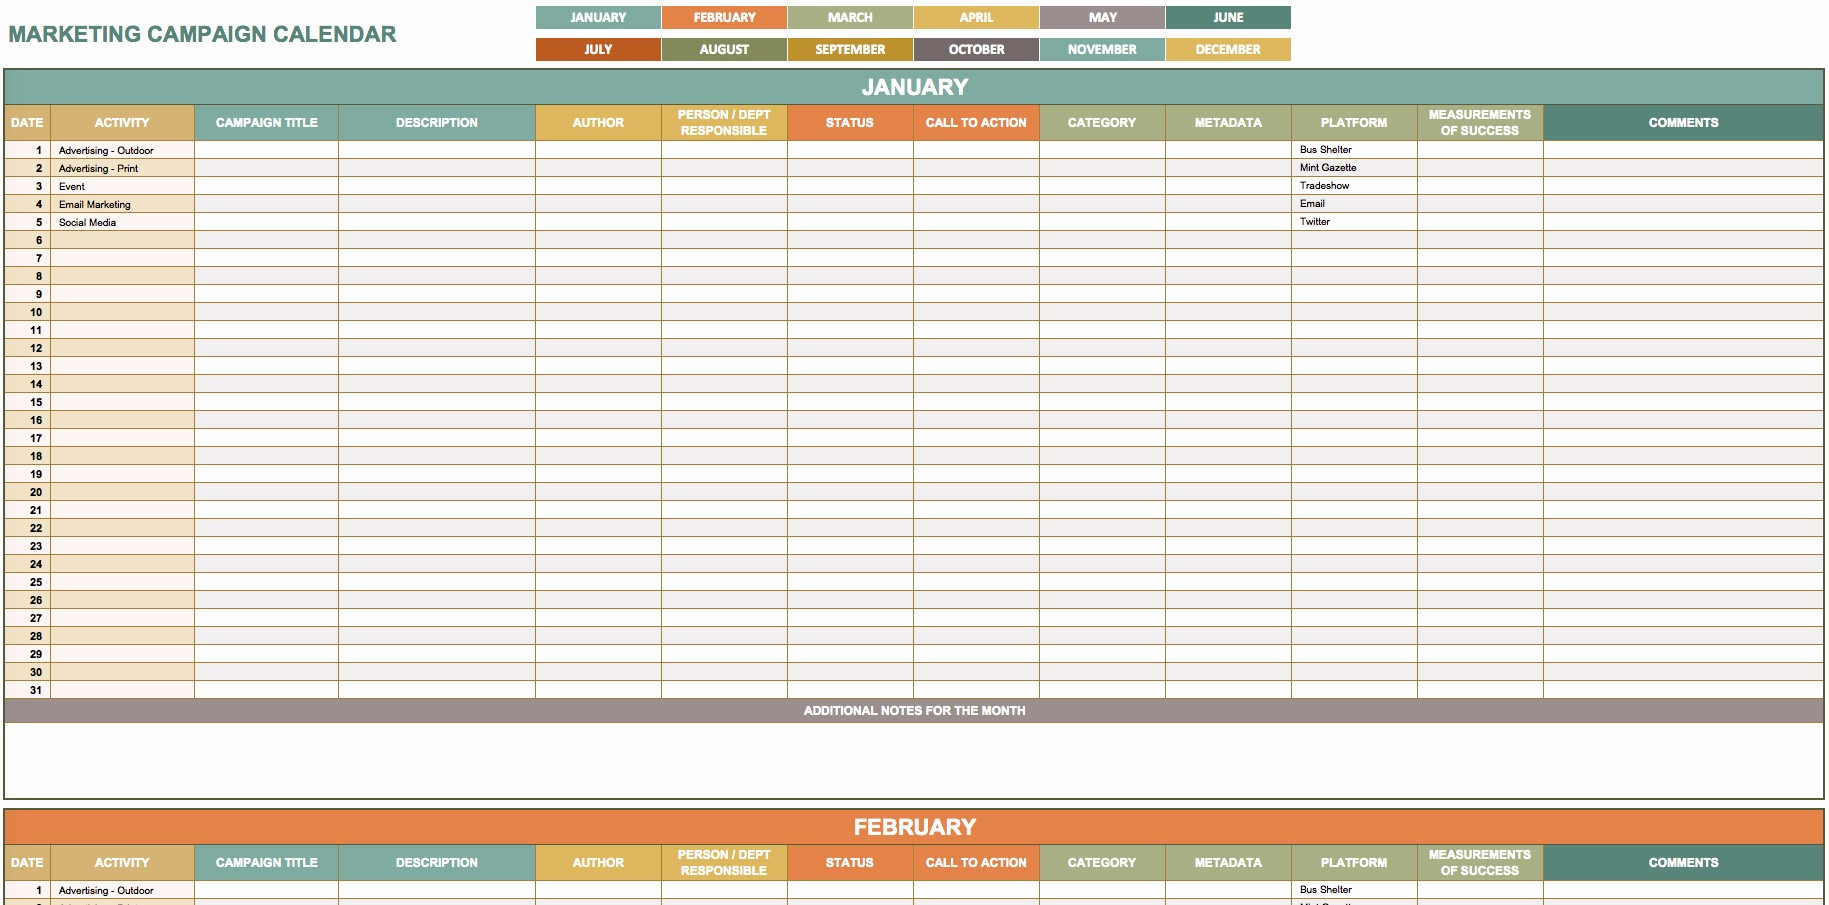 Marketing Calendar Template Excel 2015 Elegant 9 Free Marketing Calendar Templates for Excel Smartsheet